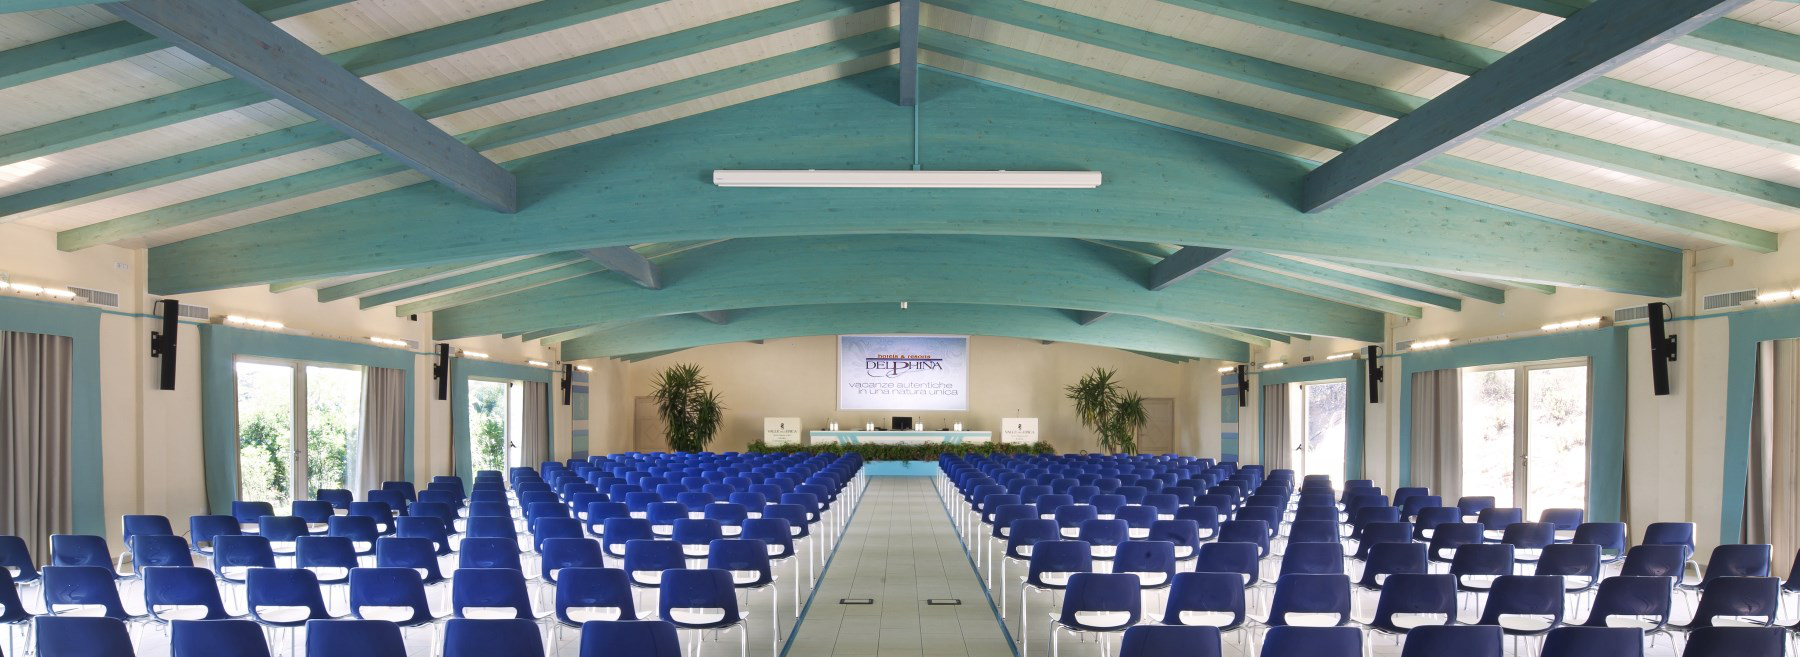 resort-valle-dell-erica-slider-incentive-meeting-conference-center